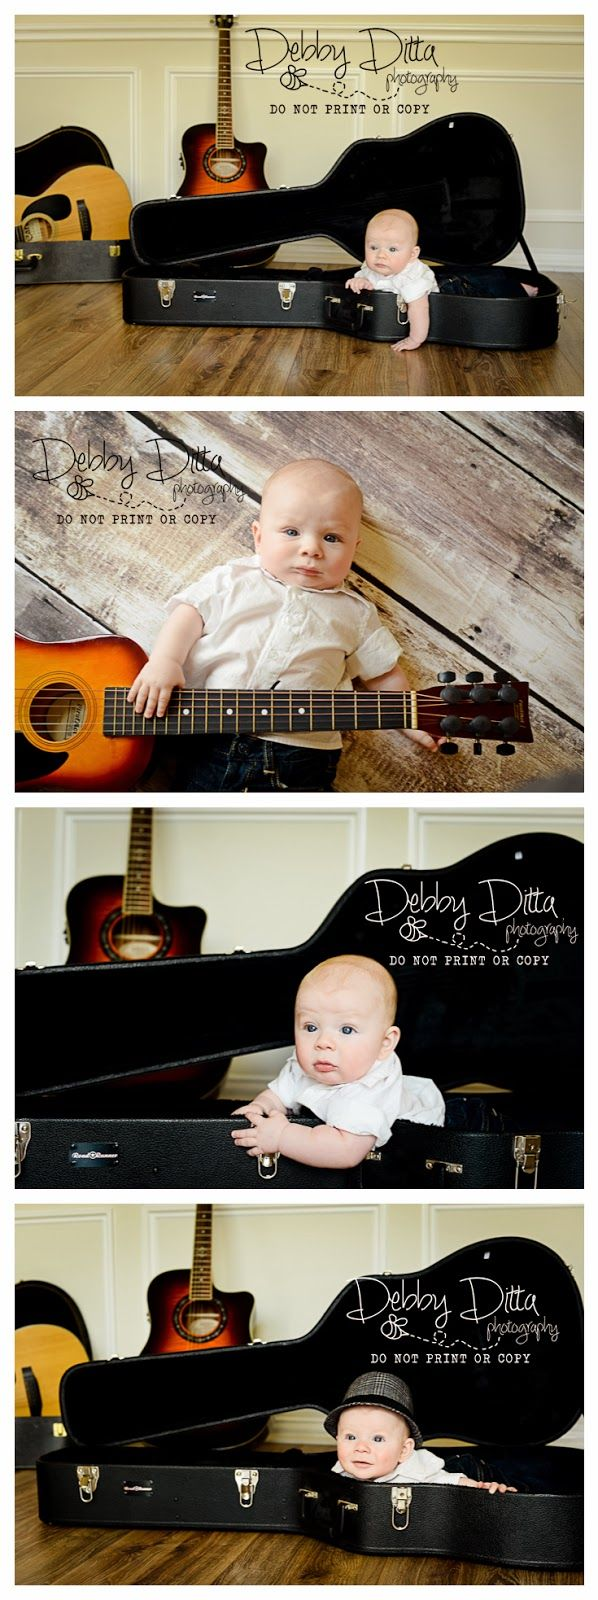 Debby Ditta Photography: Baby J at 4 Months Guitar music baby at 4 month session.  Debby Ditta Photography  Debby Ditta Photography  newborn baby session.  Tomball, Cypress, The Woodlands, Spring, Texas photographer.